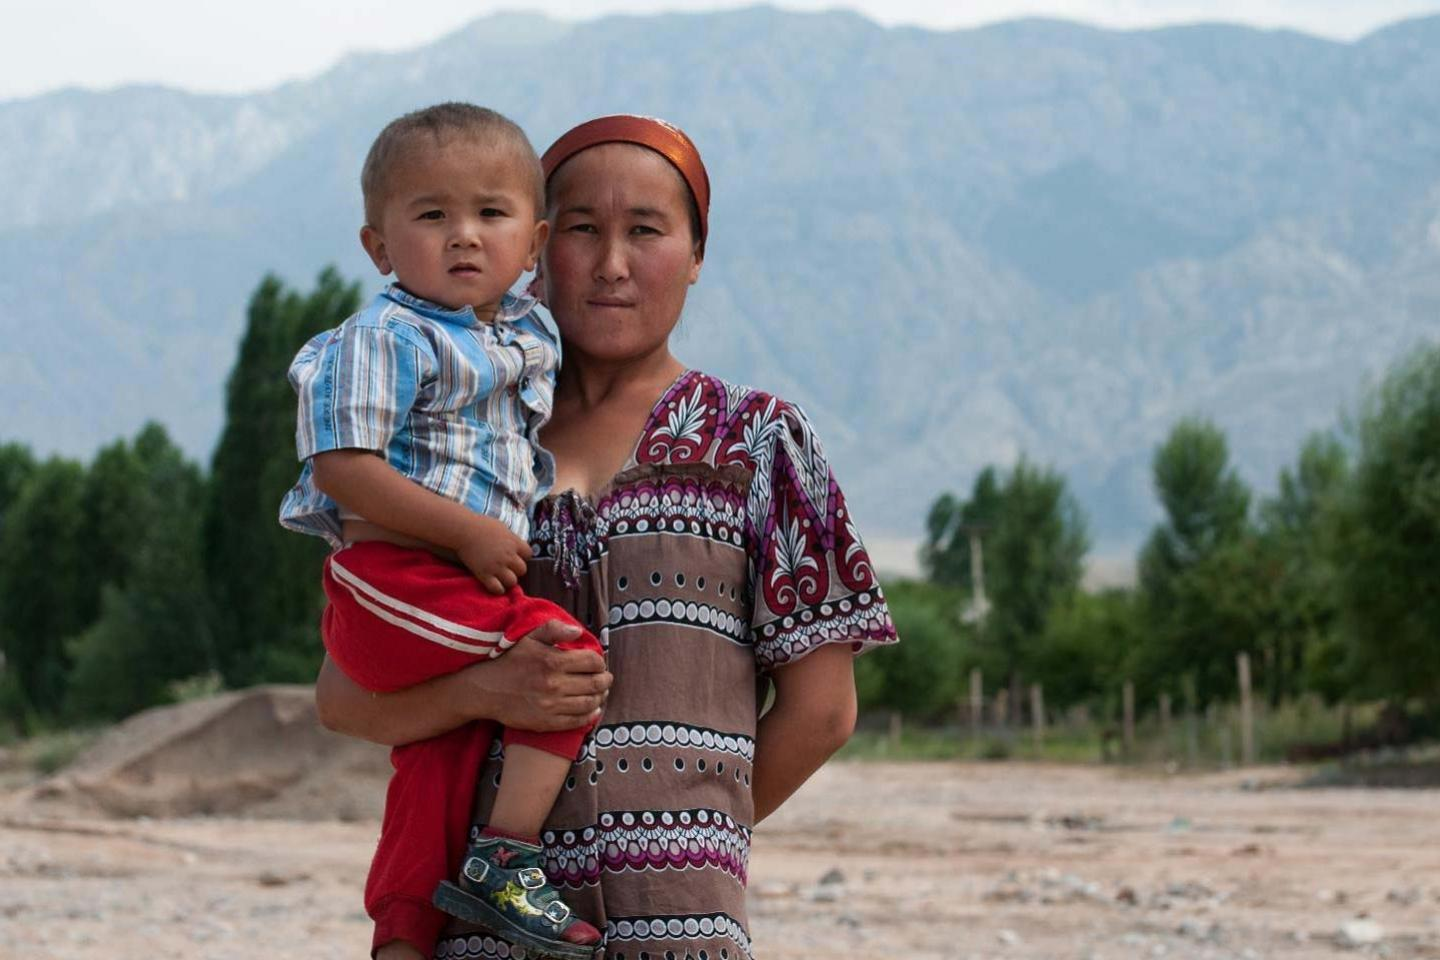 A mother holds her son in her arms against a mountainous backdrop